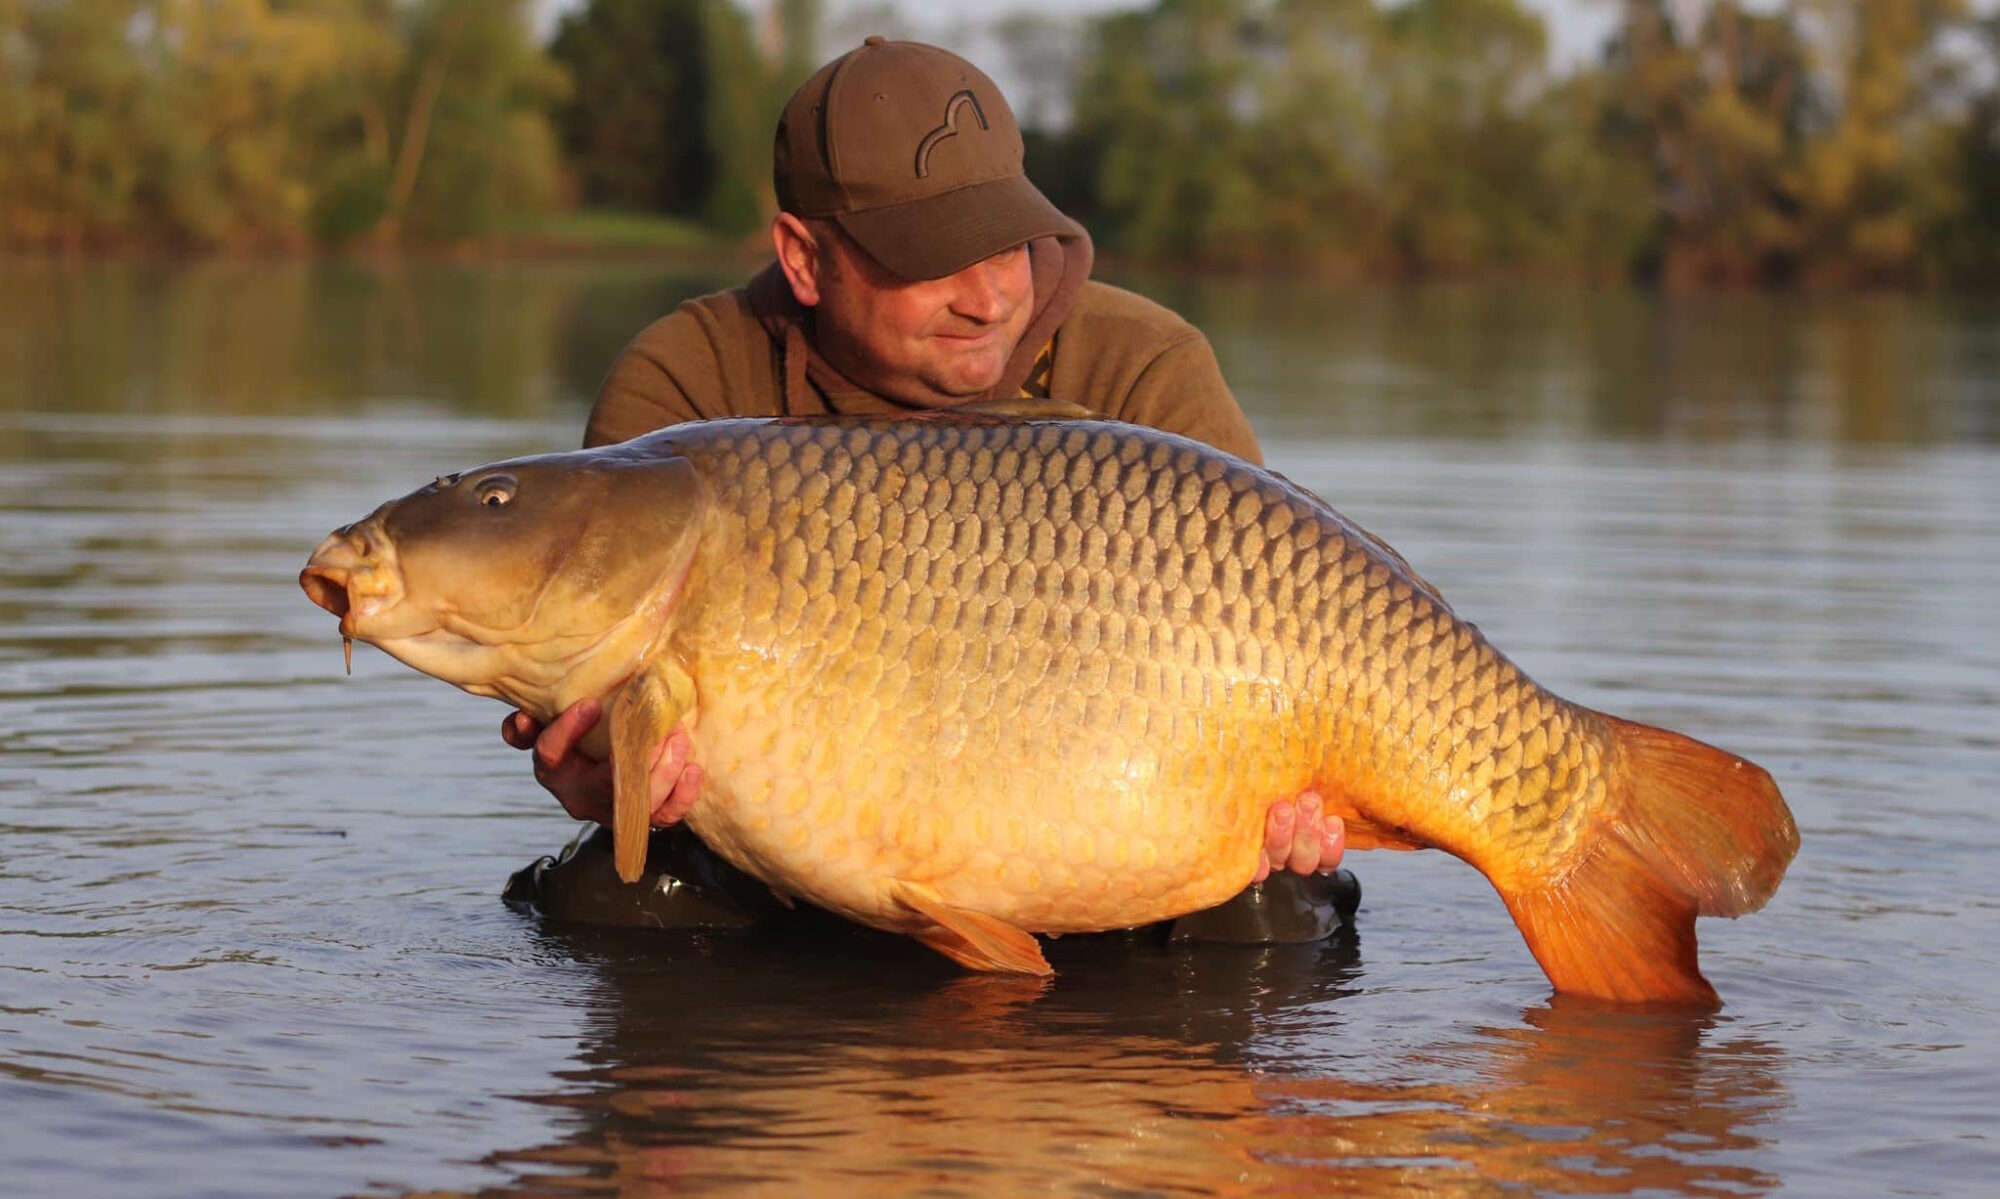 Charlie lake goncourt carp fishing france 5cc81c25